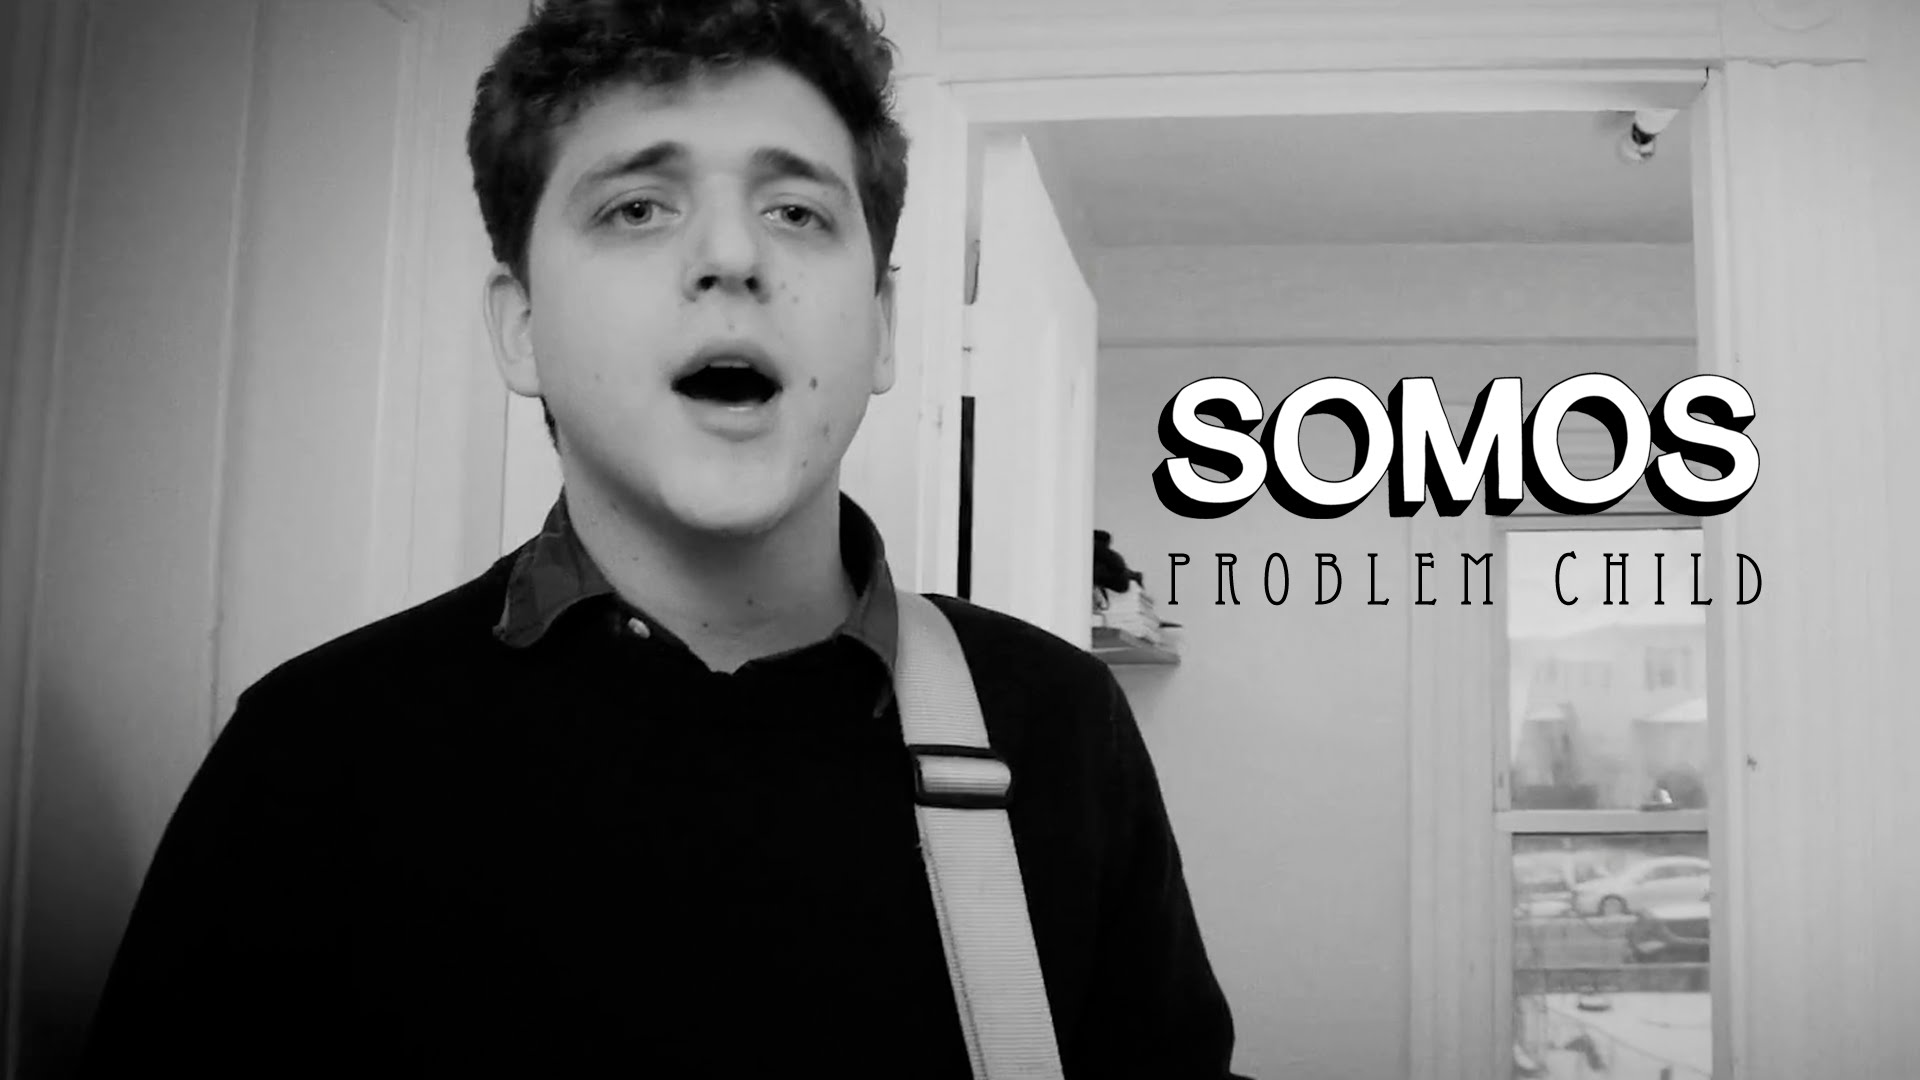 Somos - Problem Child (Official Music Video)